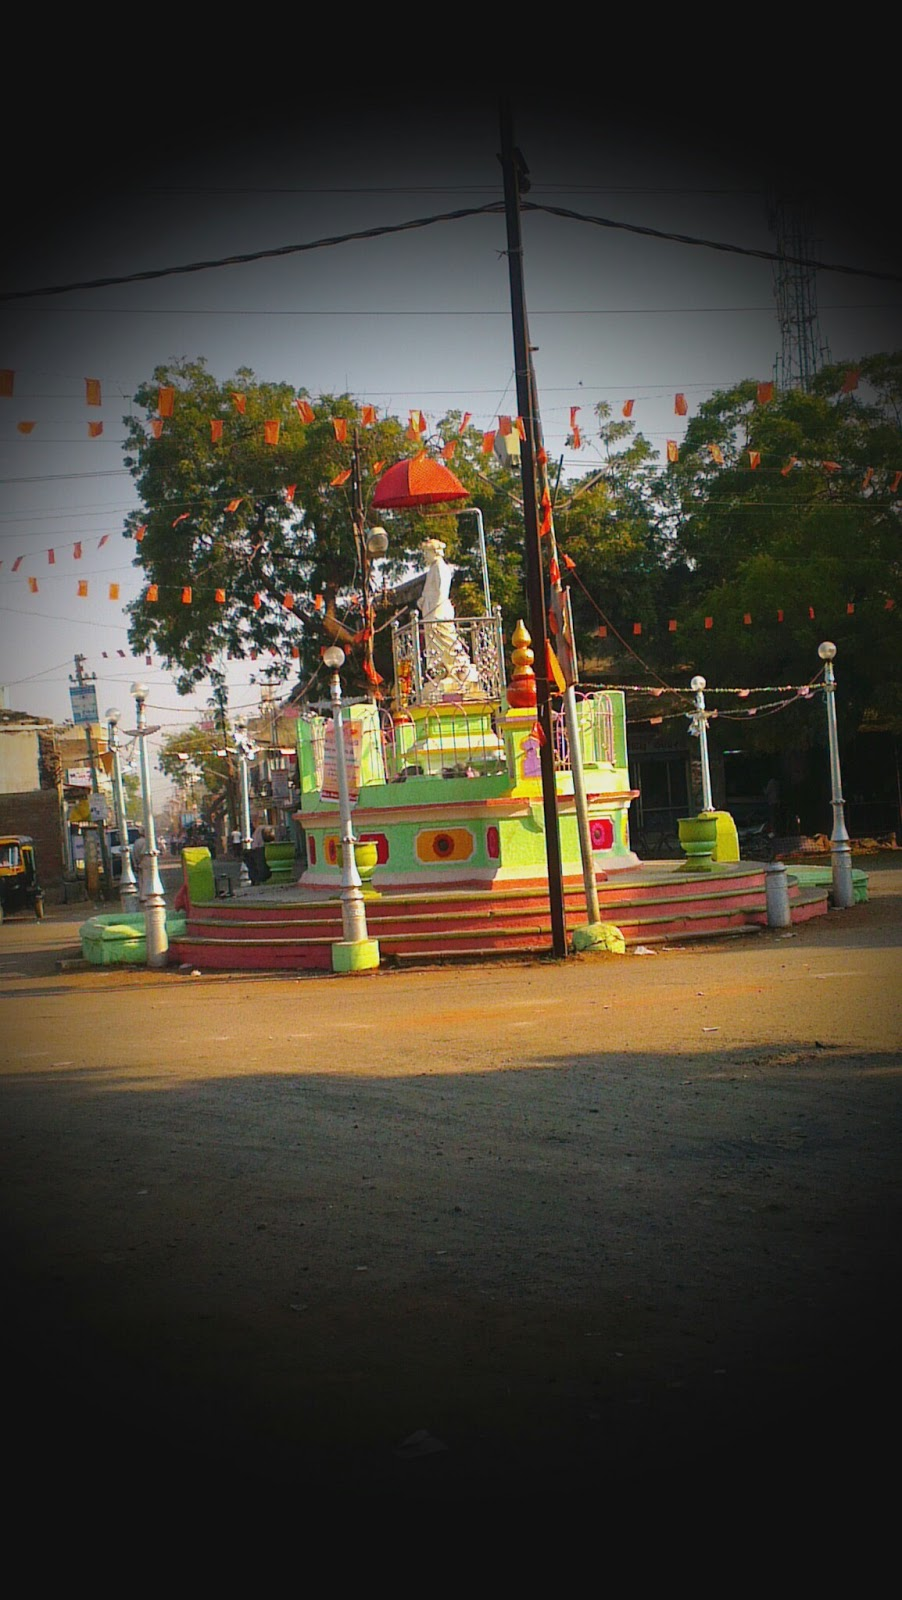 The Green Chowk